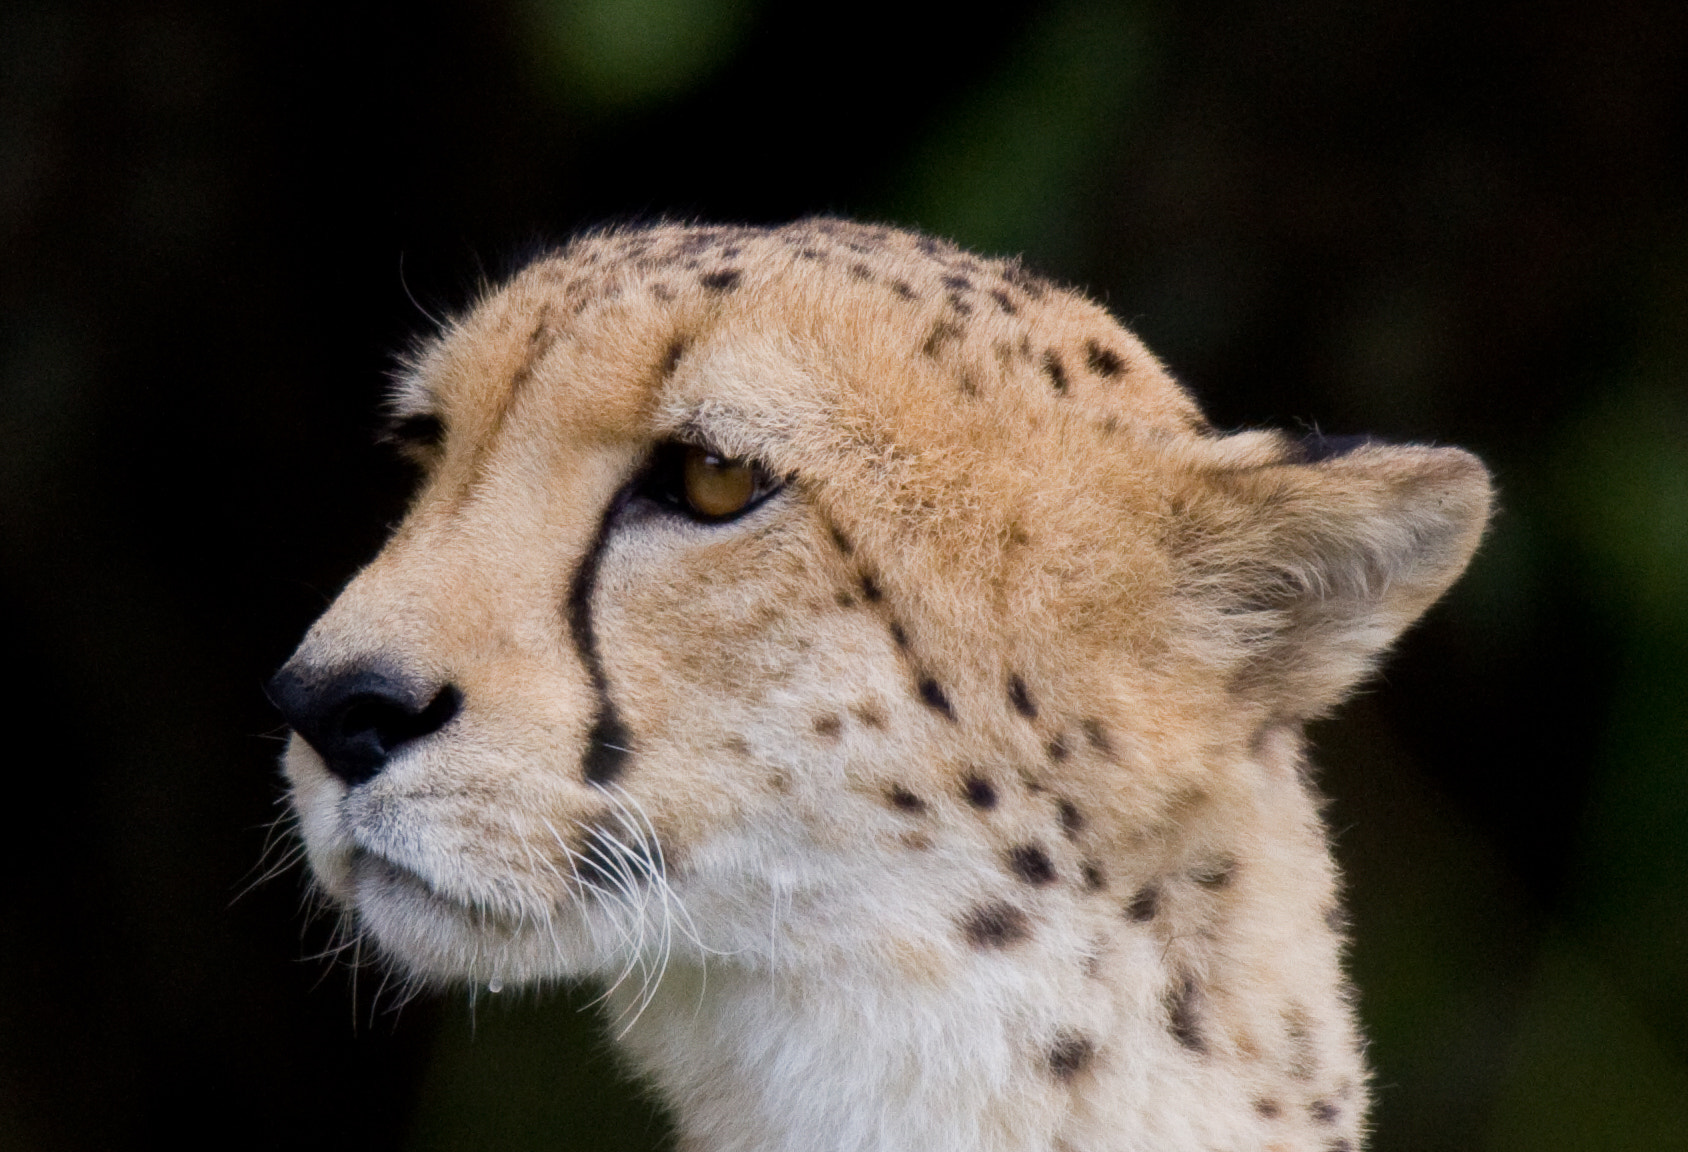 Photograph Cheetah by robert mcaloney on 500px